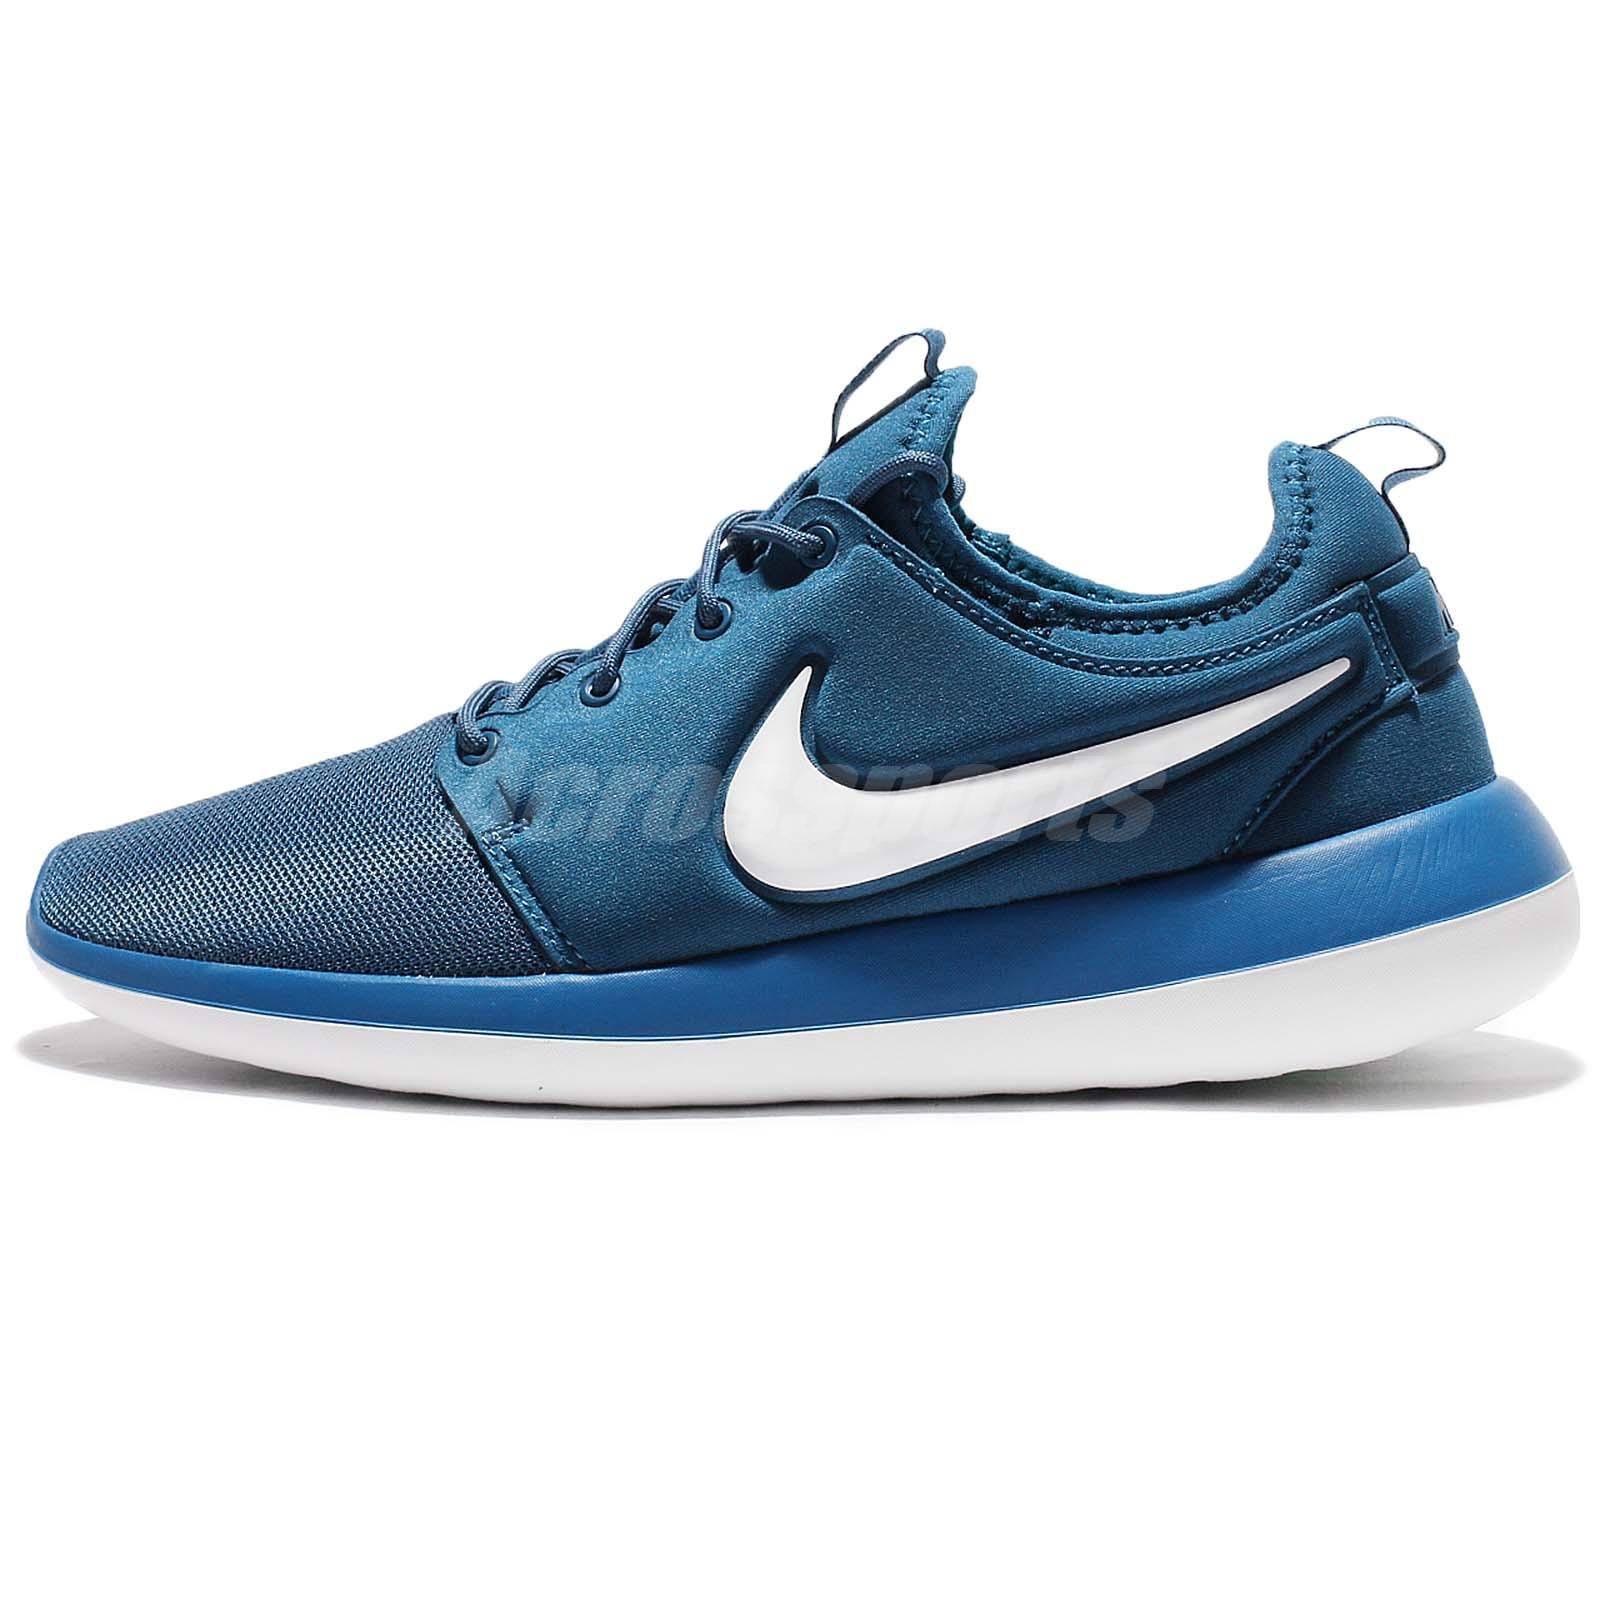 Nike Roshe Run Blue And White